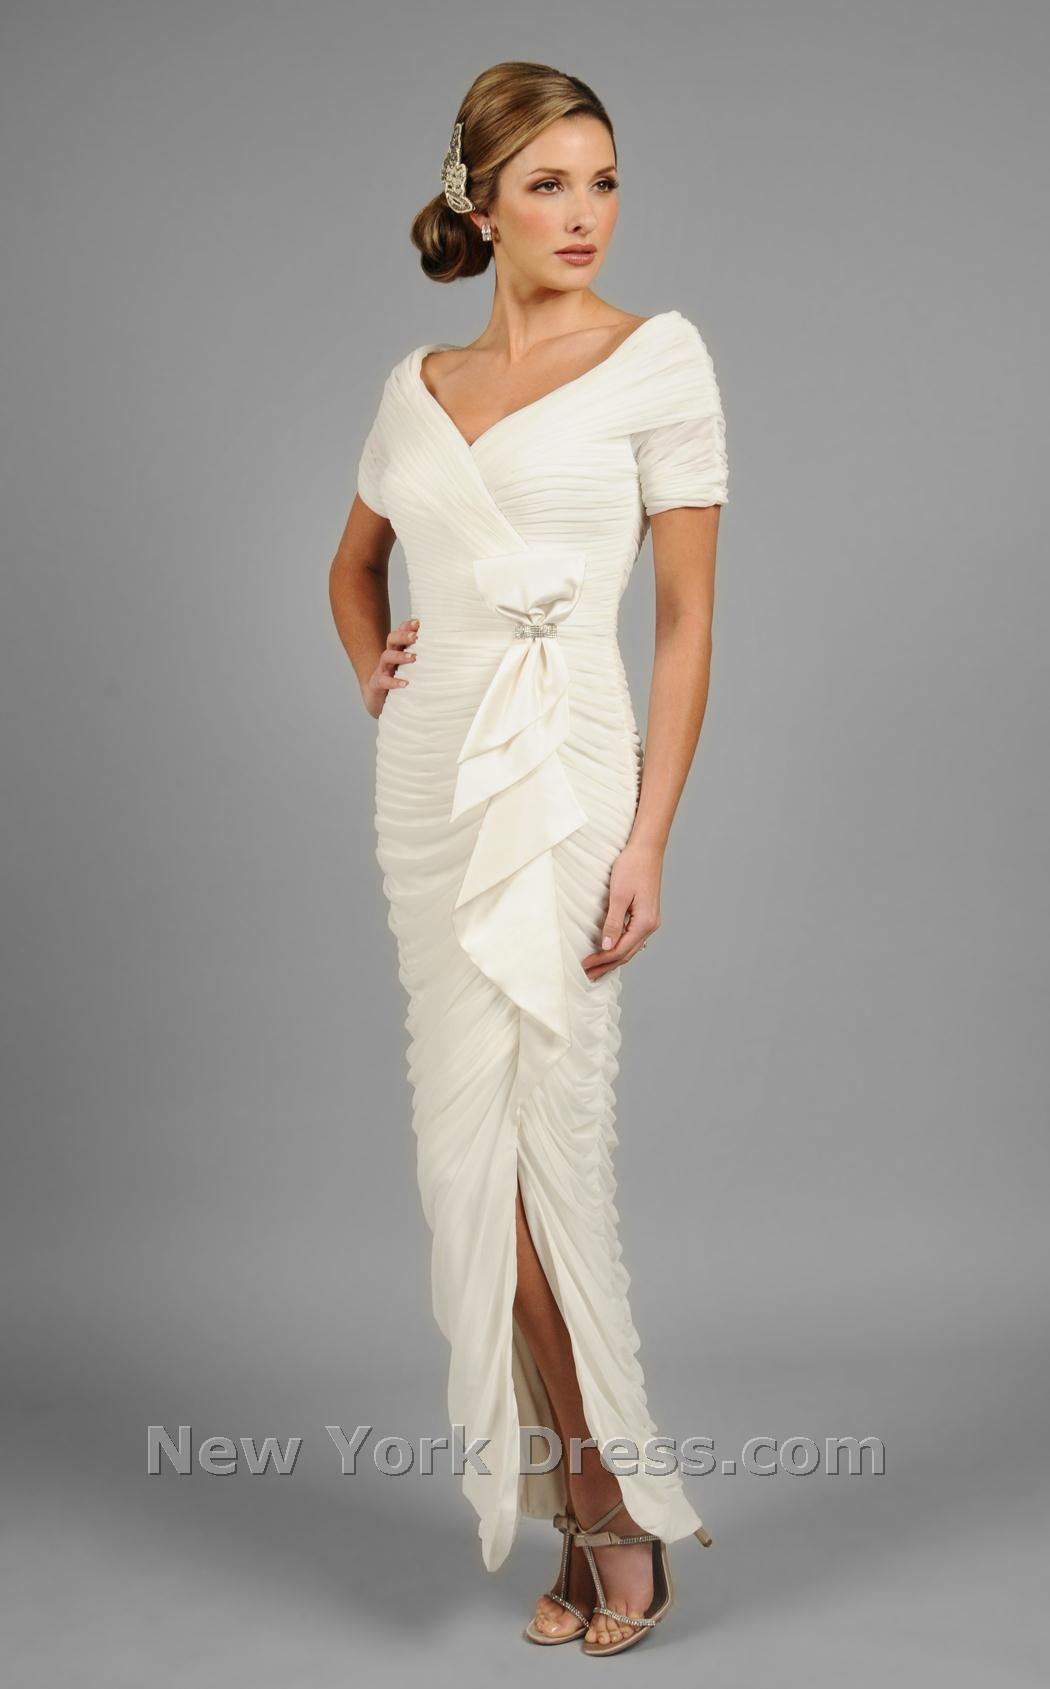 Mature wedding dresses tips on where and how to buy them for Perfect wedding dress finder